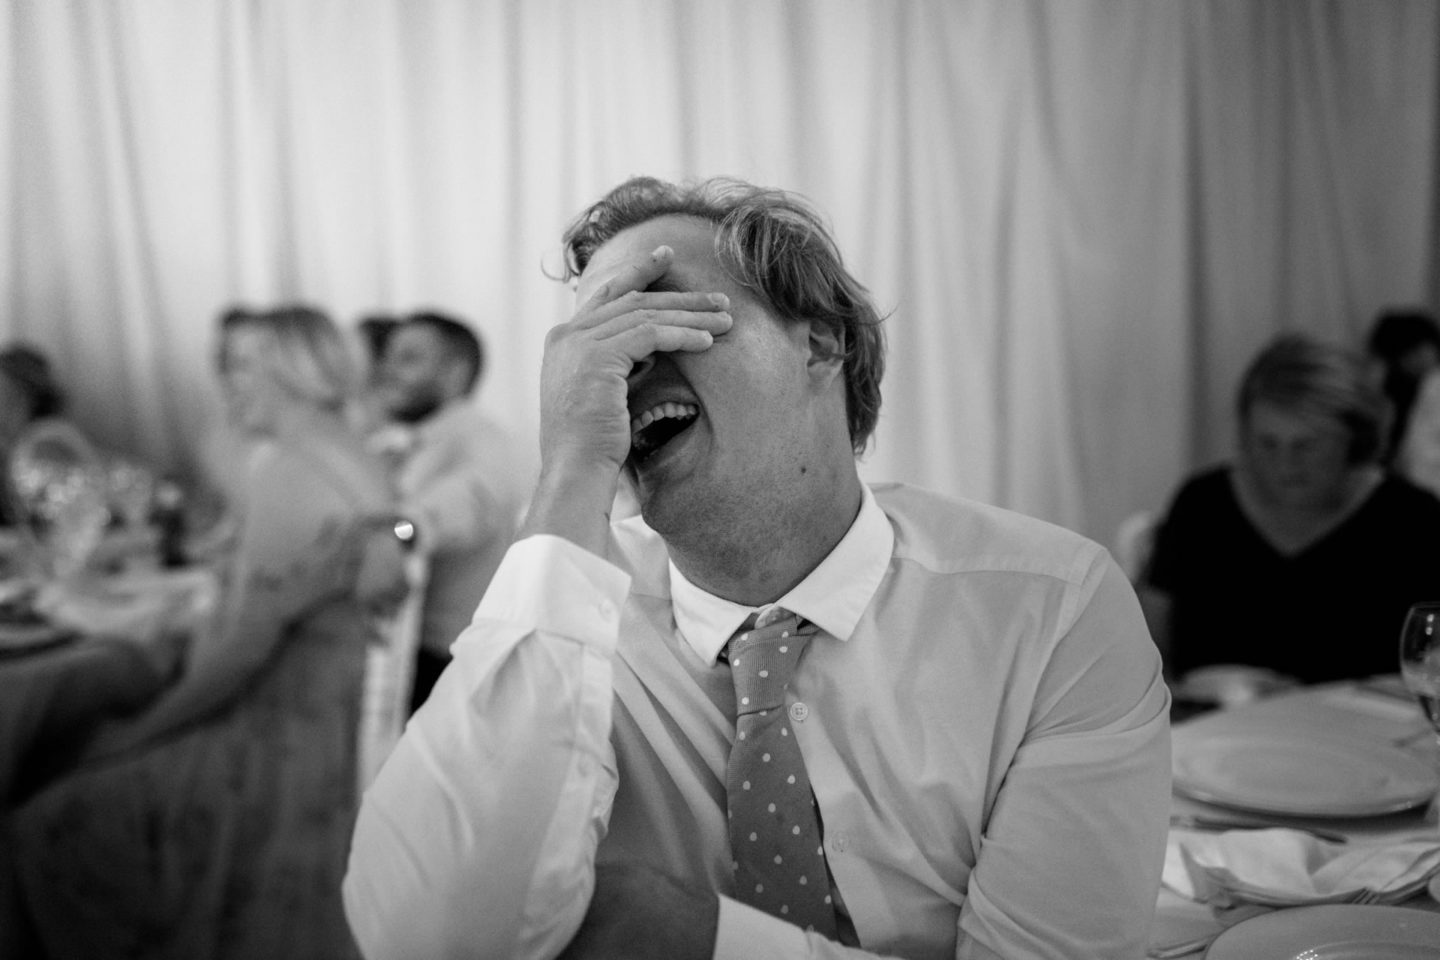 Laugh :: Crazy wedding at Vincigliata Castle and Villa San Michele :: Luxury wedding photography - 49 :: Laugh